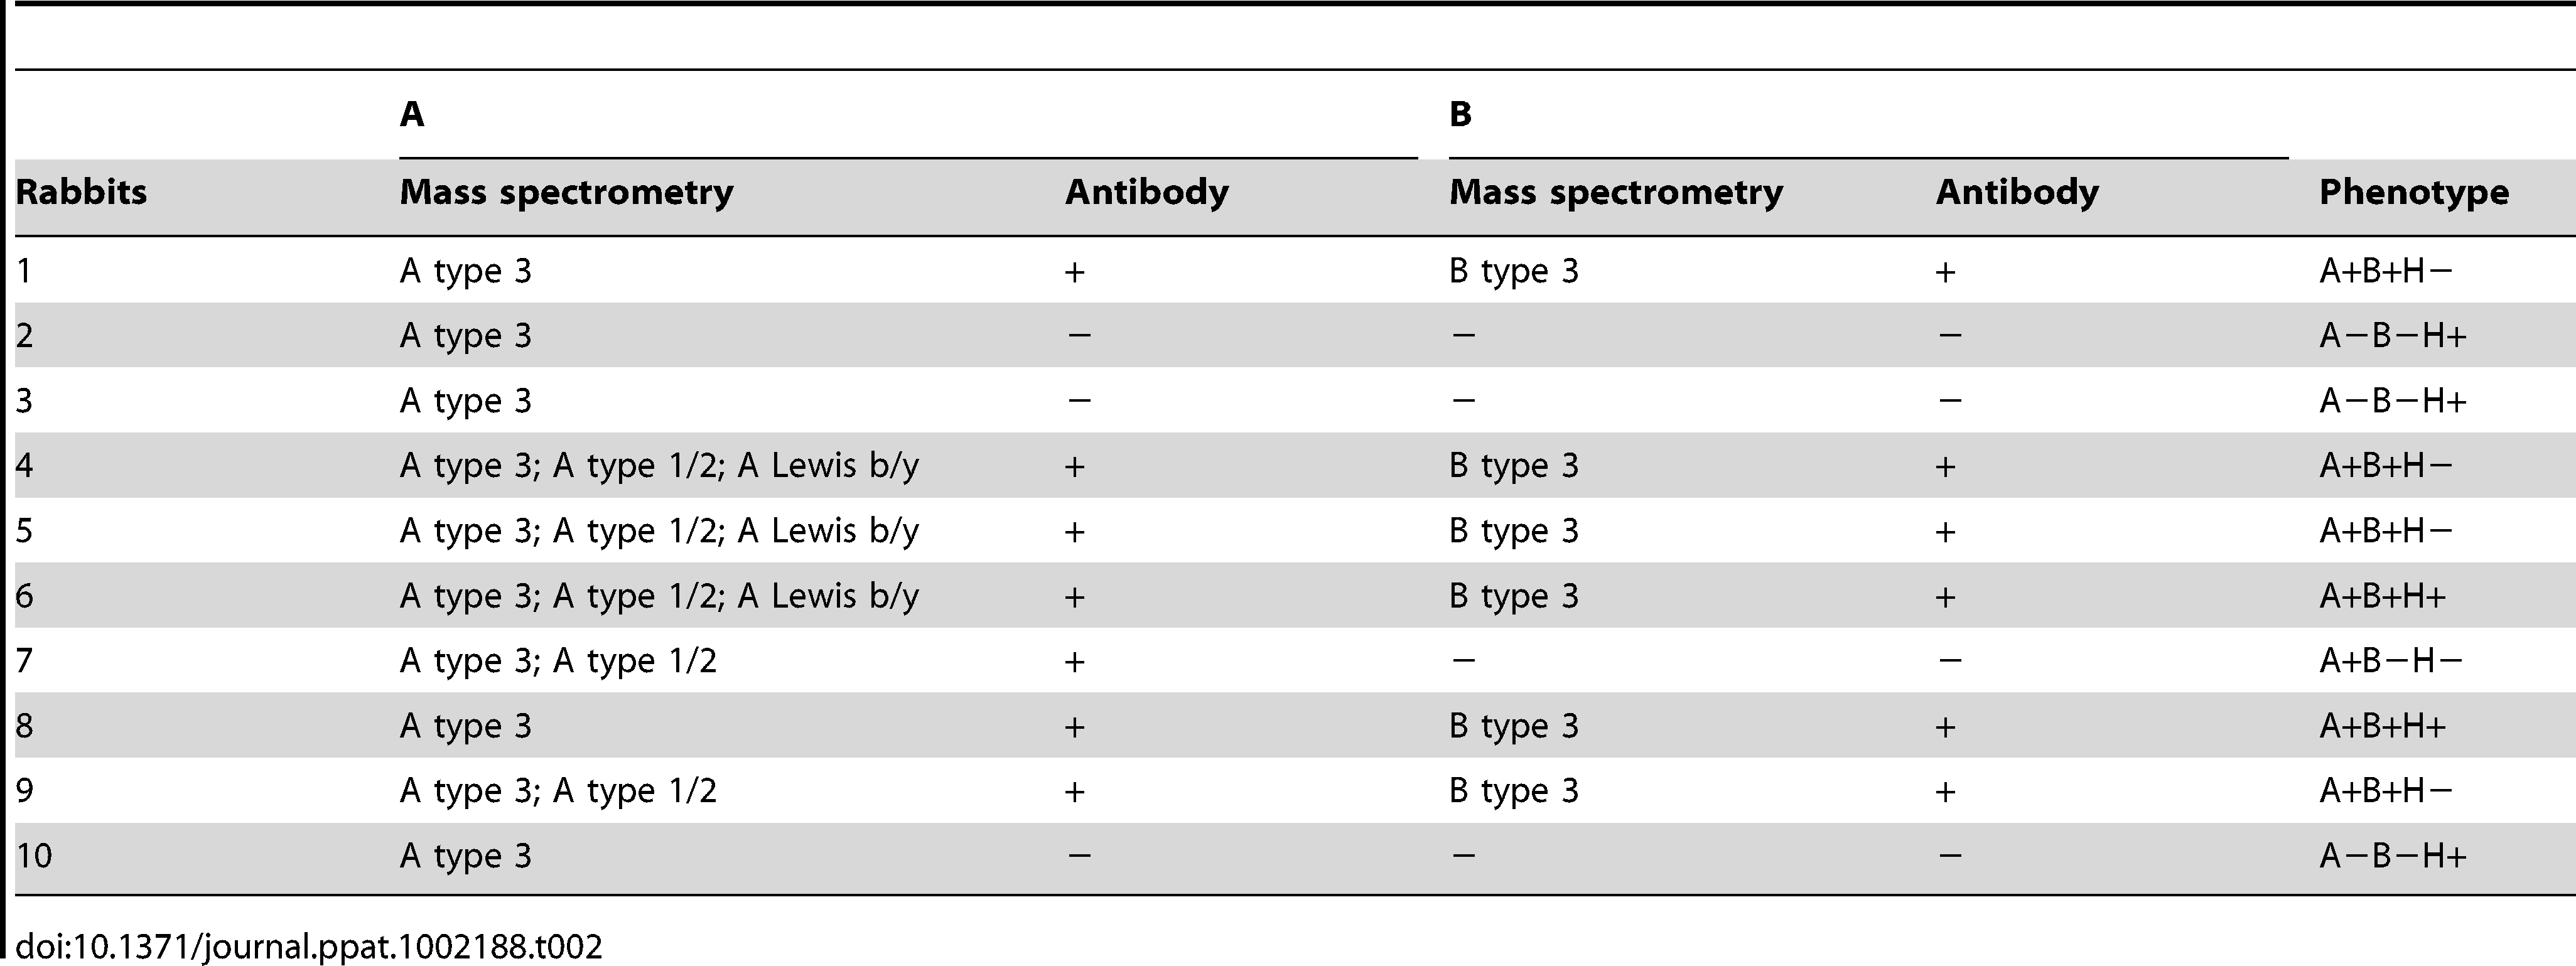 Detection of A and B with mass spectrometry and antibodies.